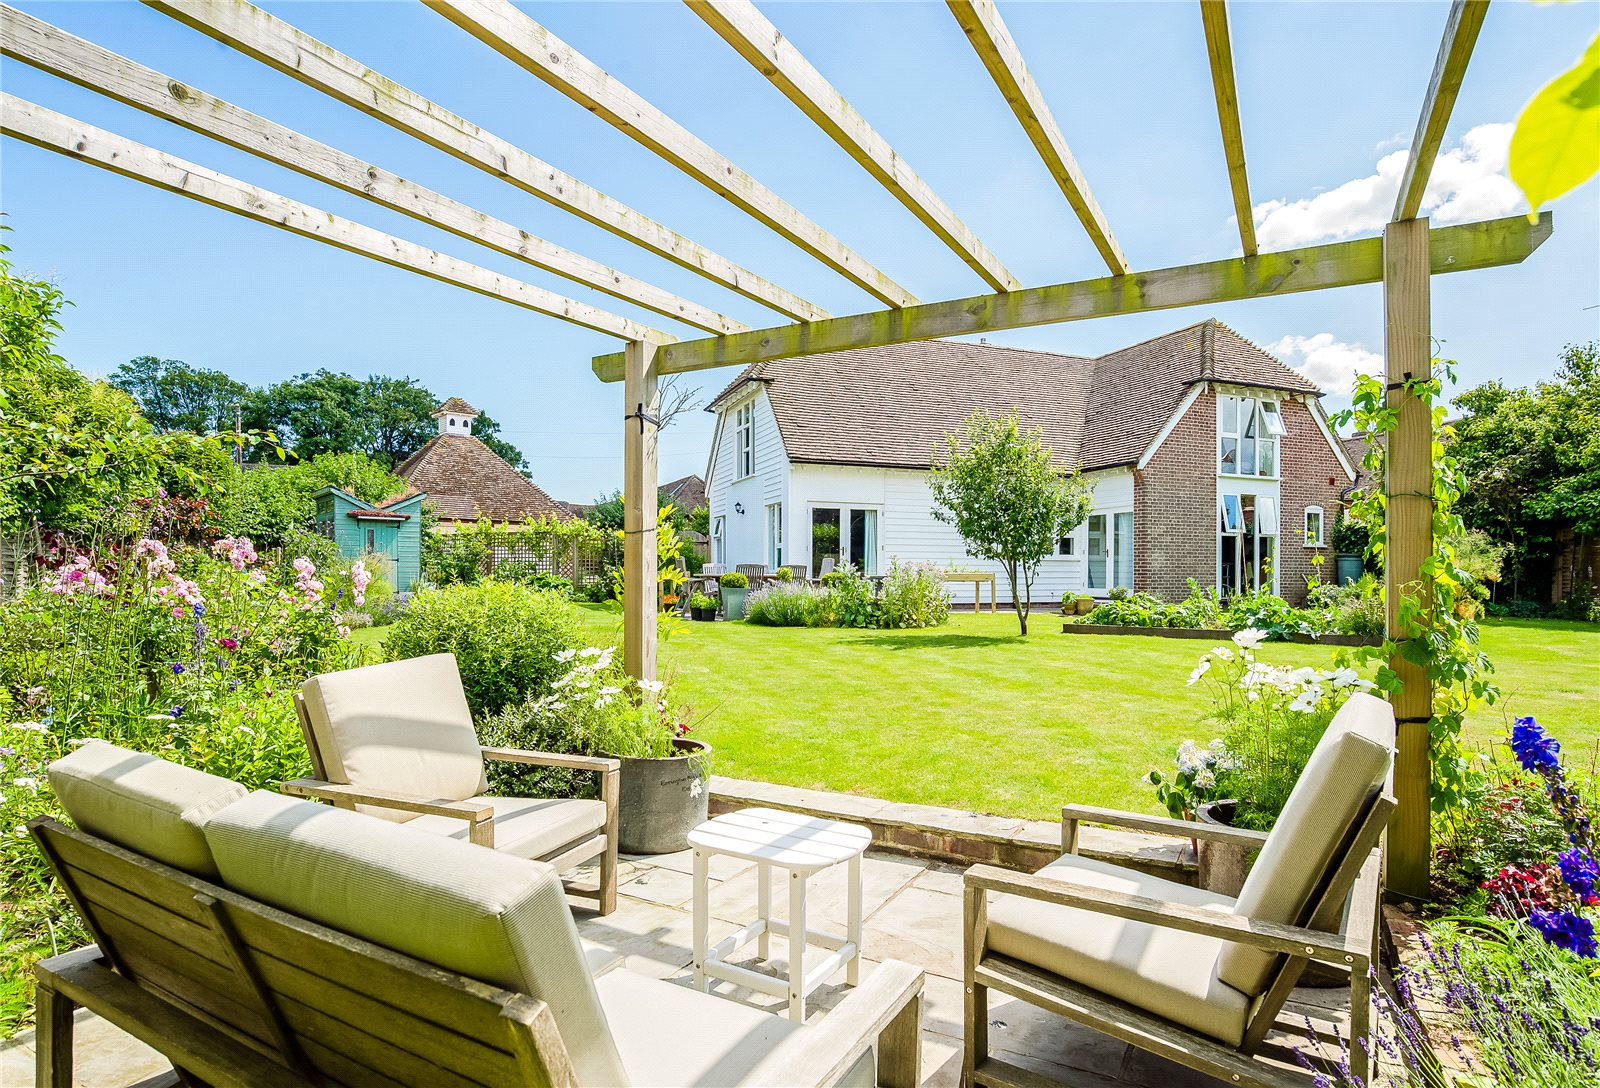 Single Family Home for Sale at Ickham Court Farm, The Street, Ickham, Canterbury, CT3 Canterbury, England